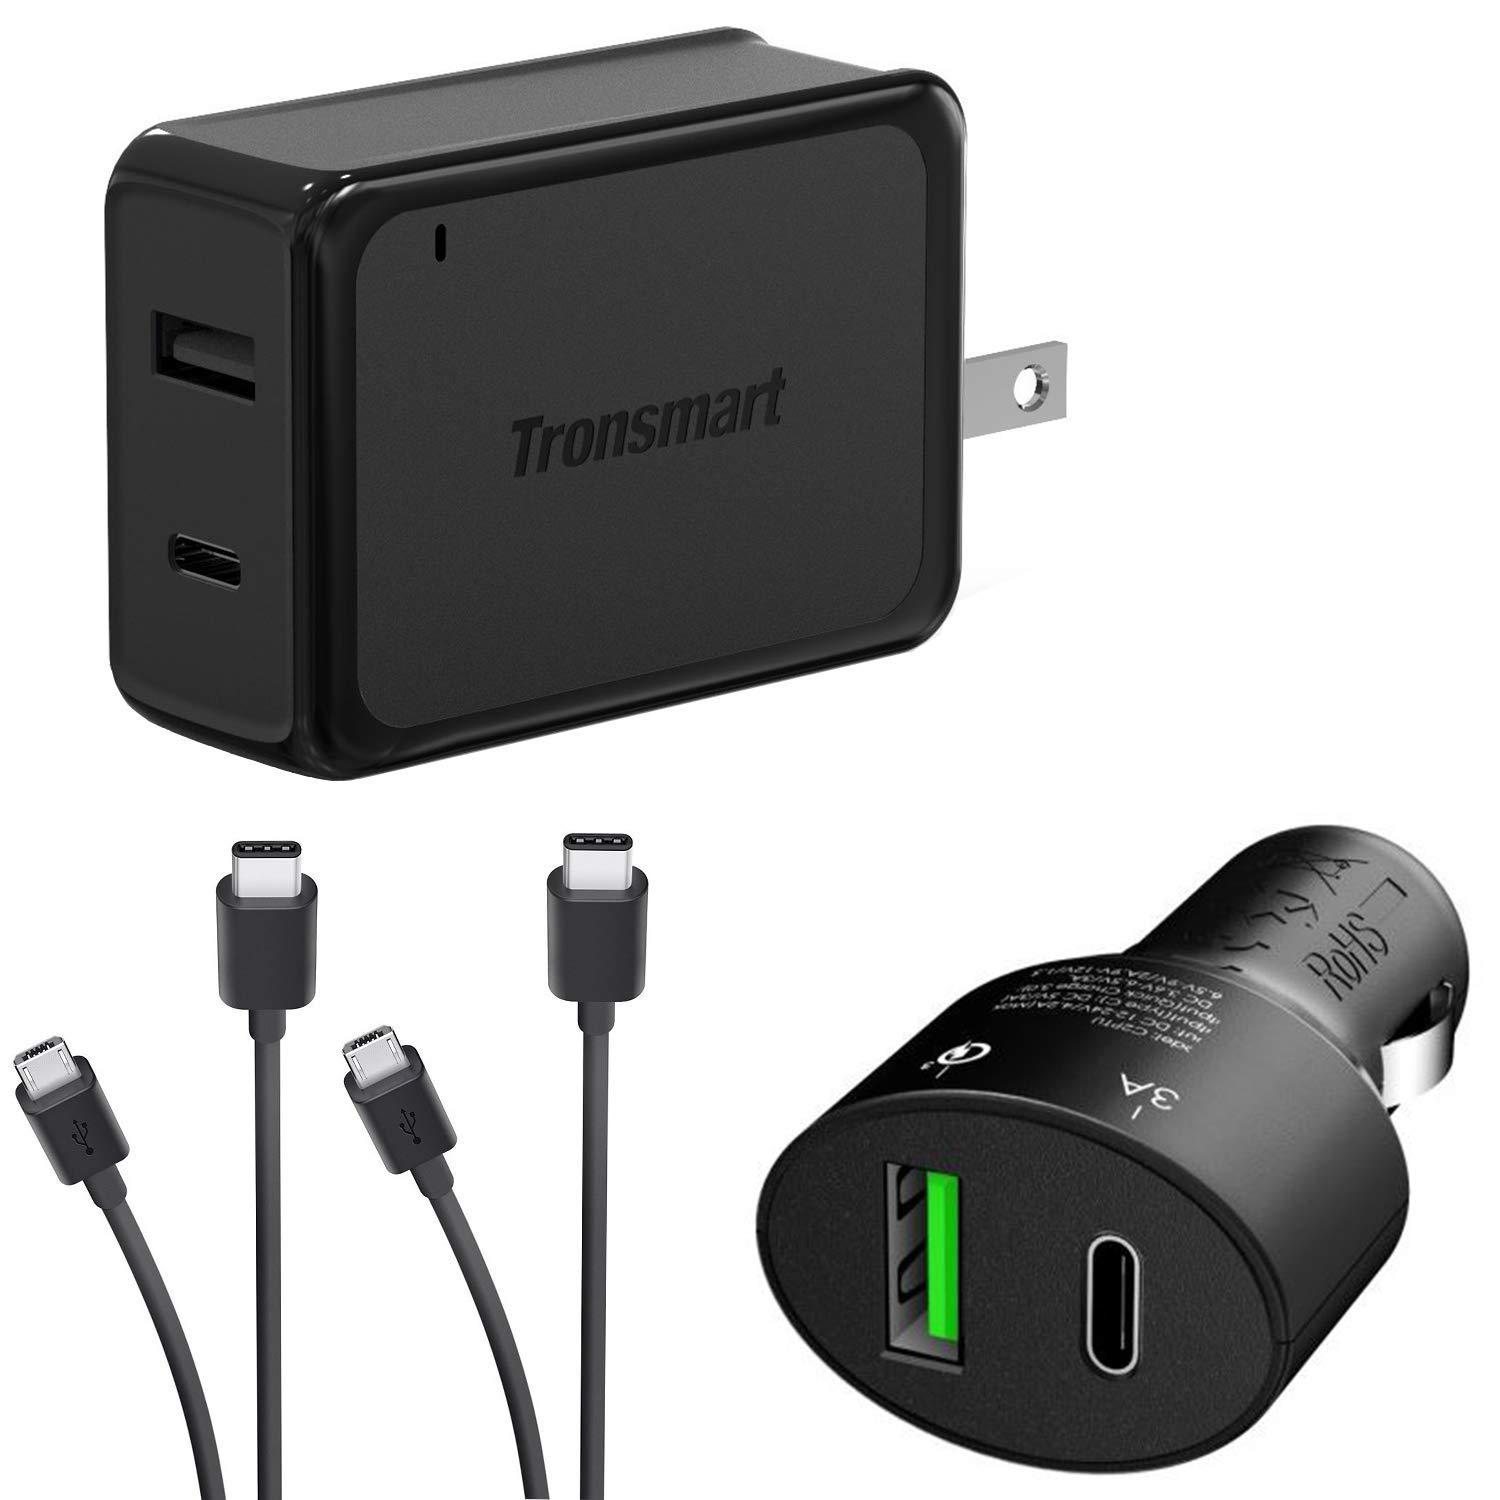 Turbo Quick Wall and Car Charger Kit for Samsung Galaxy Tab A (2018) with MicroUSB & USB Type-C Cables! (33Watts)